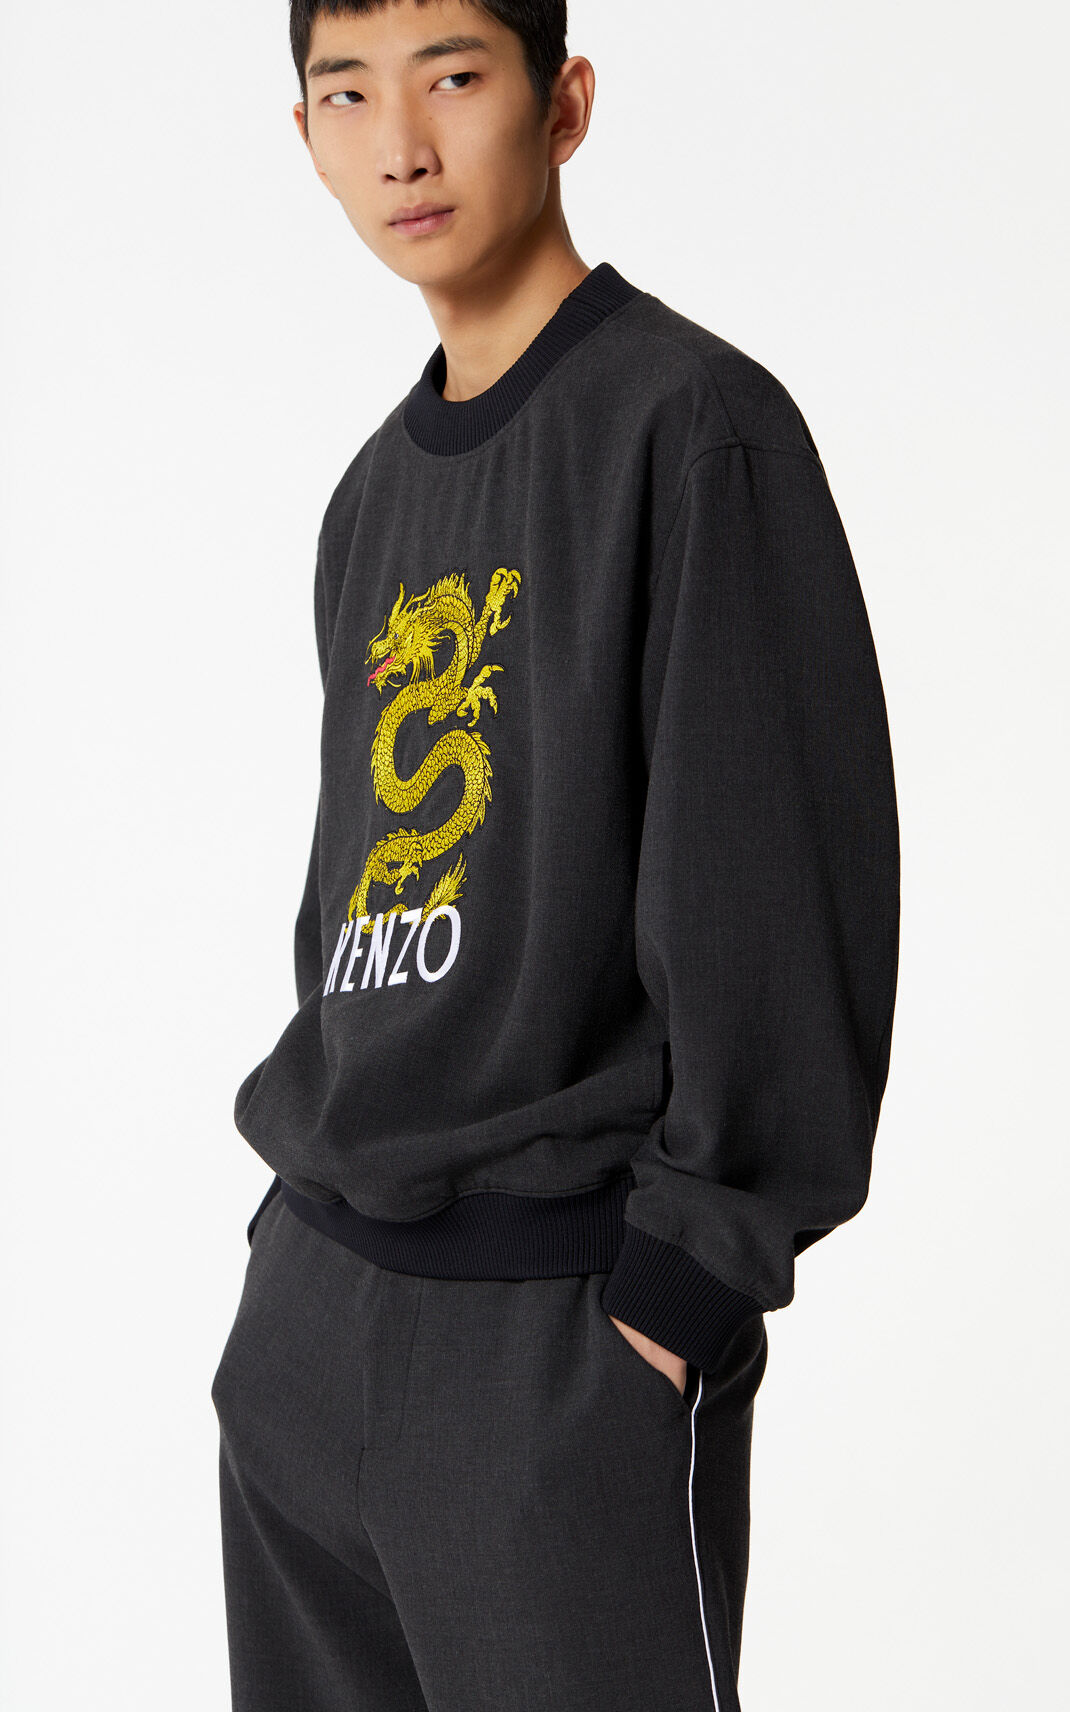 For Outlet Dragon Sweatshirt Outlet Sweatshirt Kenzo Dragon Sweatshirt Kenzo Dragon Kenzo For vN8nwm0